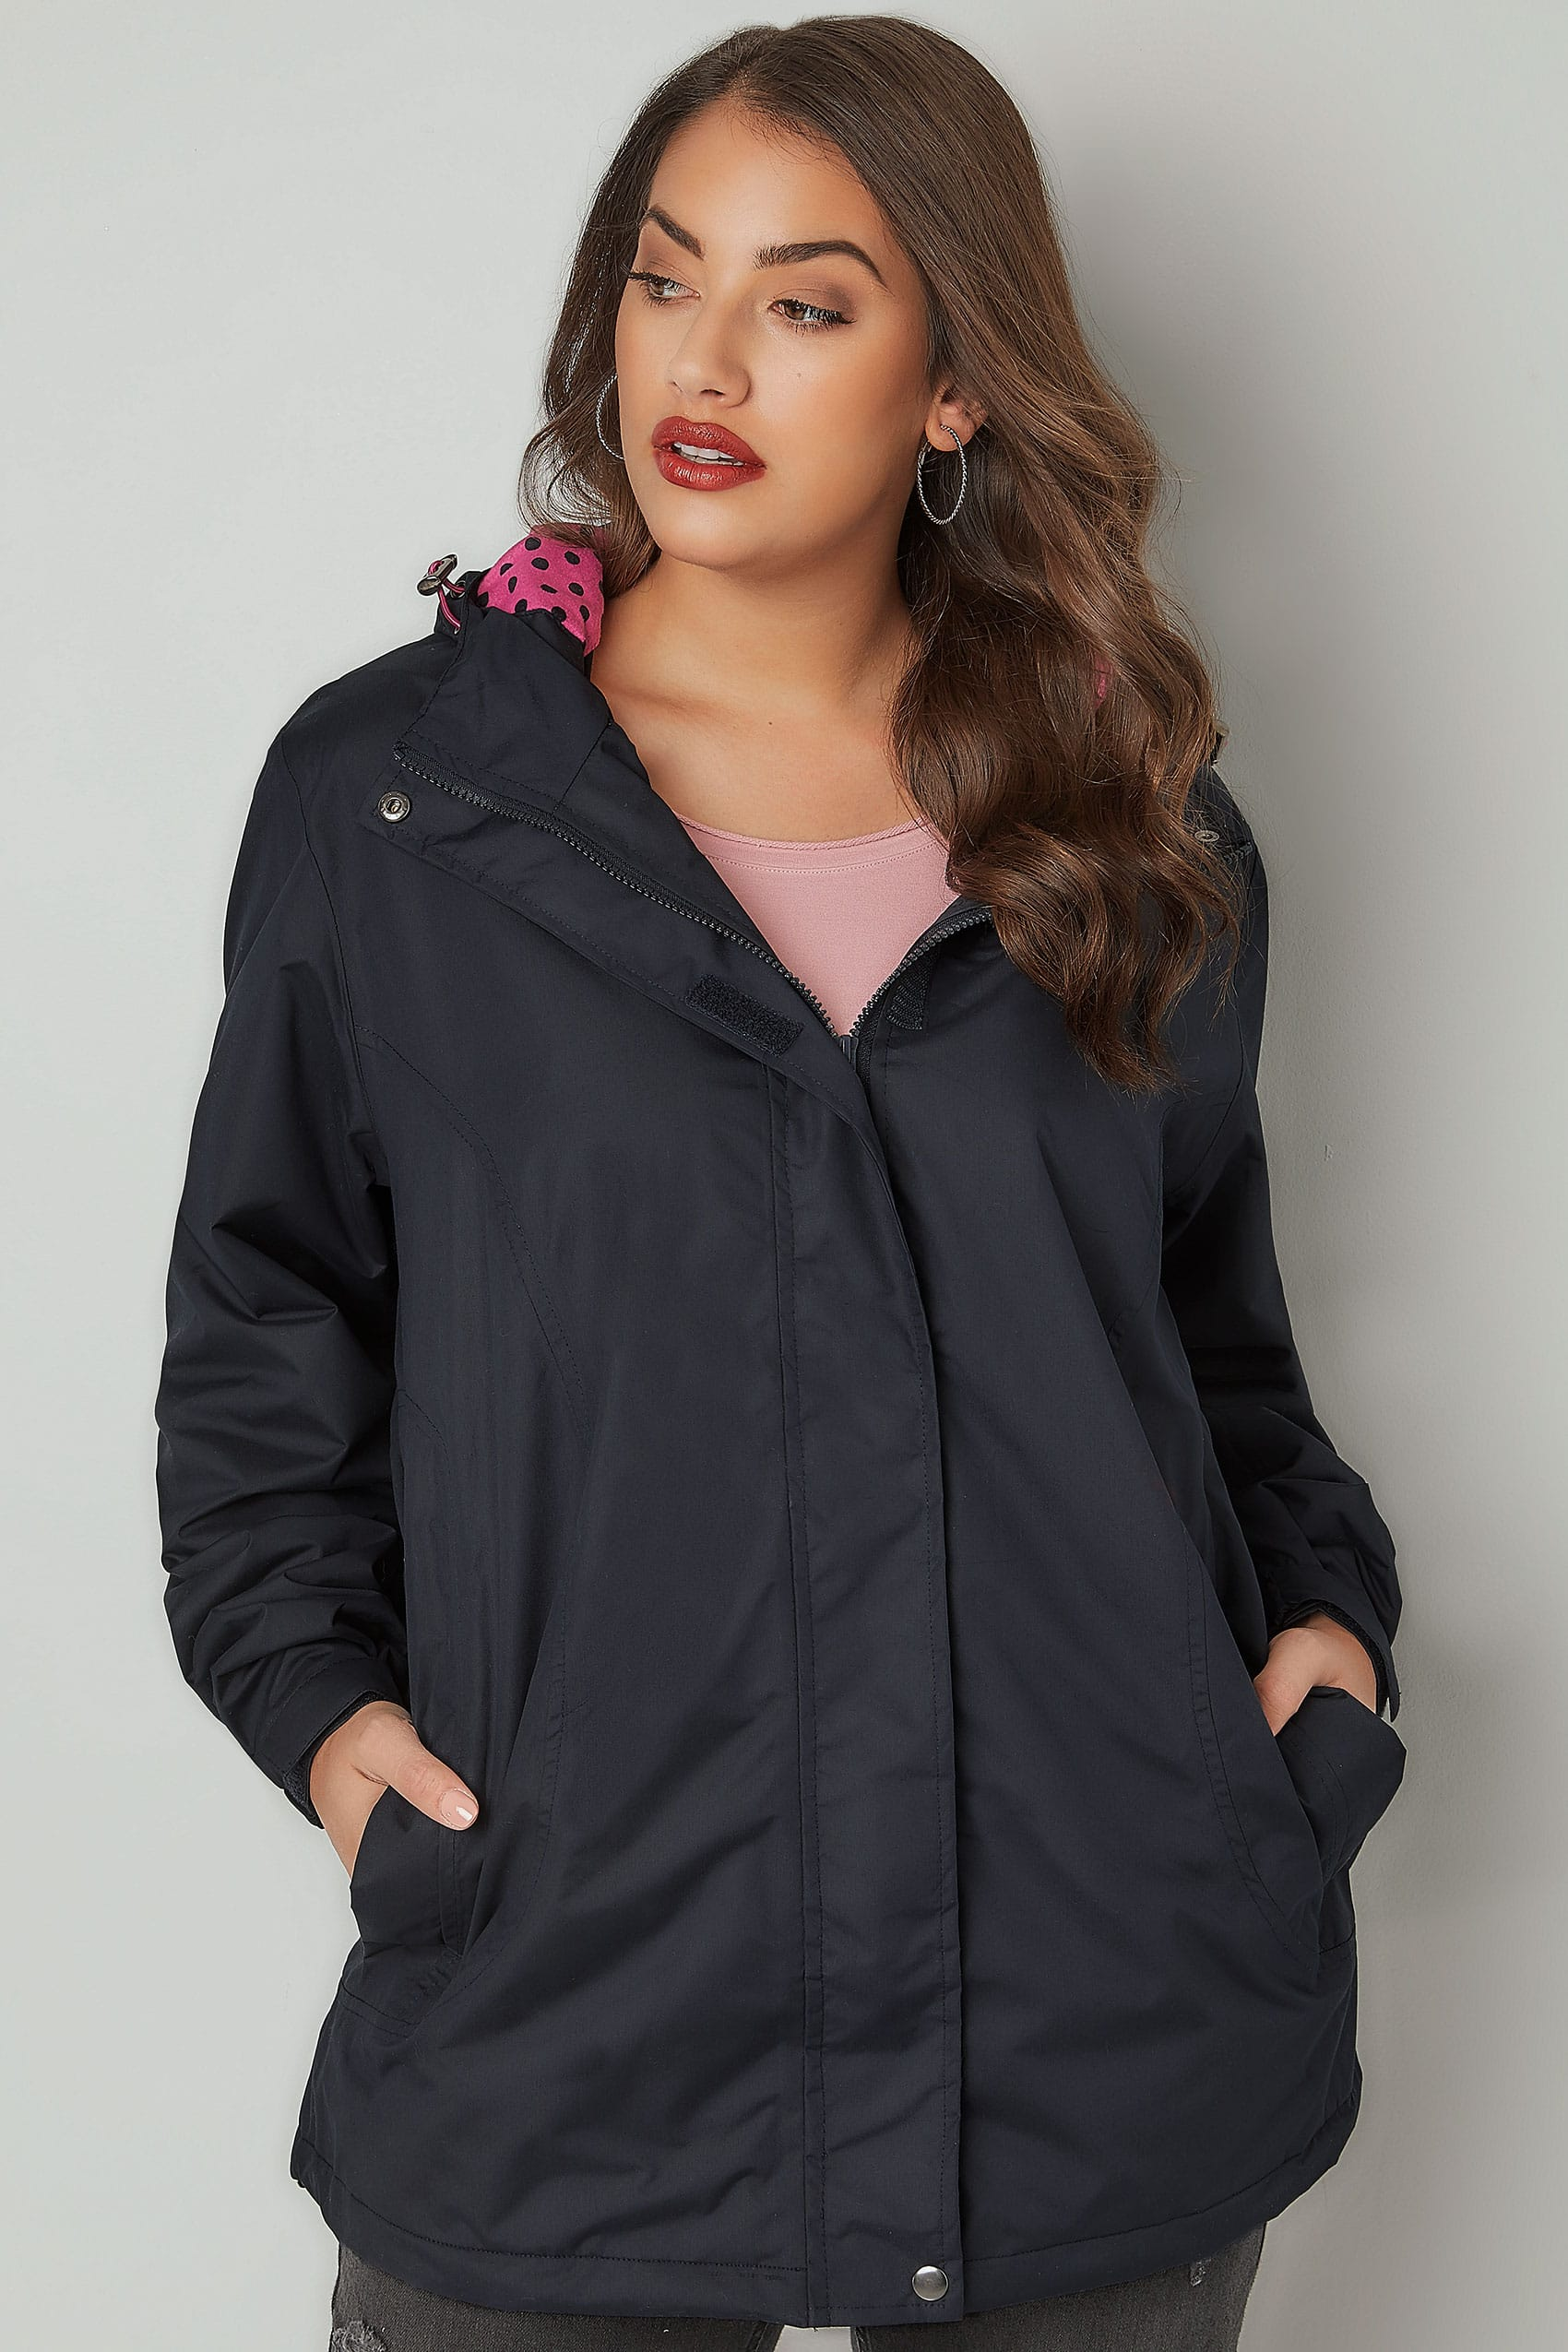 navy waterproof jacket with polka dot hood plus size 16 to 36. Black Bedroom Furniture Sets. Home Design Ideas